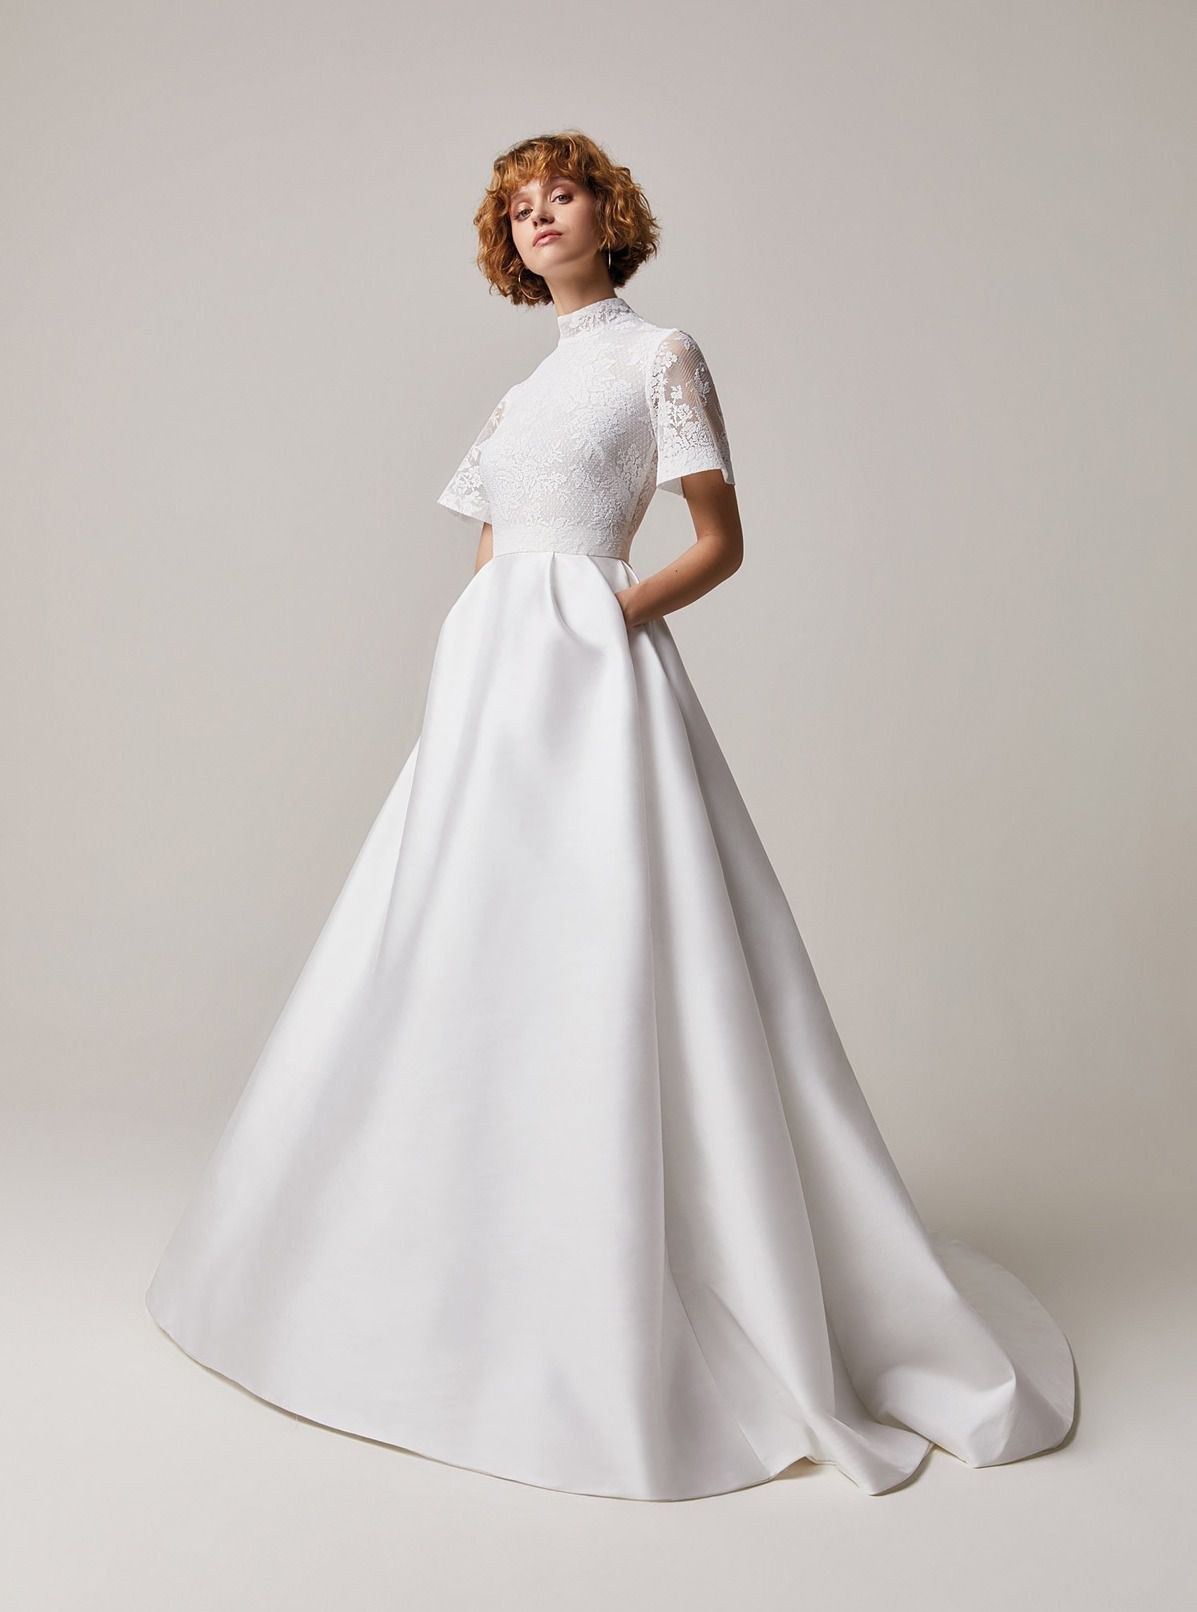 Model in high-neck white wedding gown with pockets